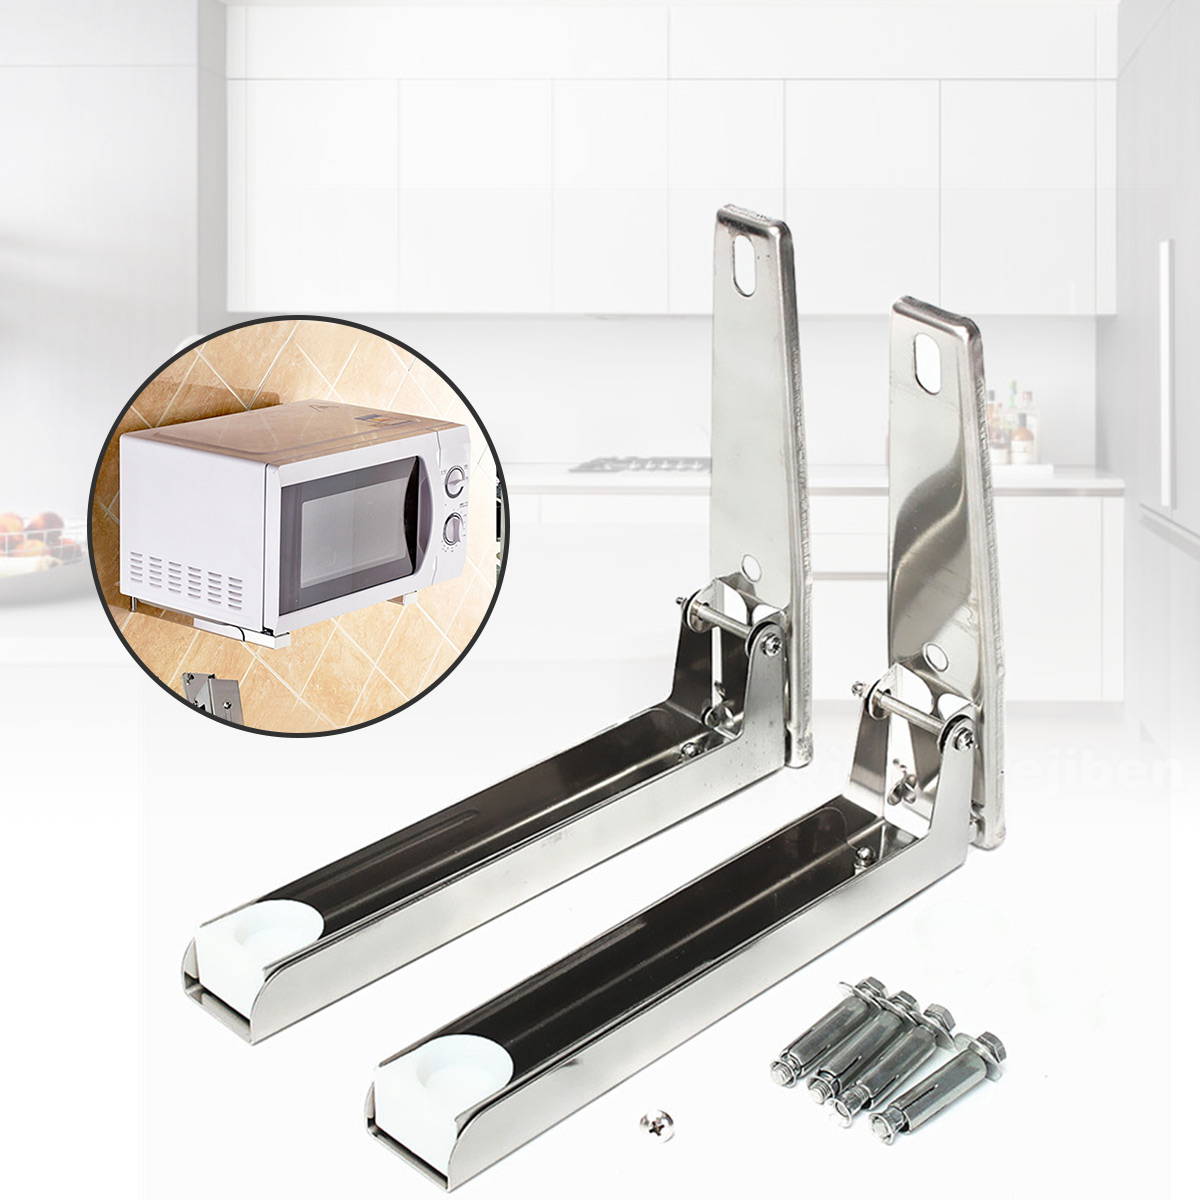 Stainless Steel Microwave Foldable Oven Shelf Rack Support Frame Stretch Adjustable Wall Mount Bracket Holder Kitchen Storage